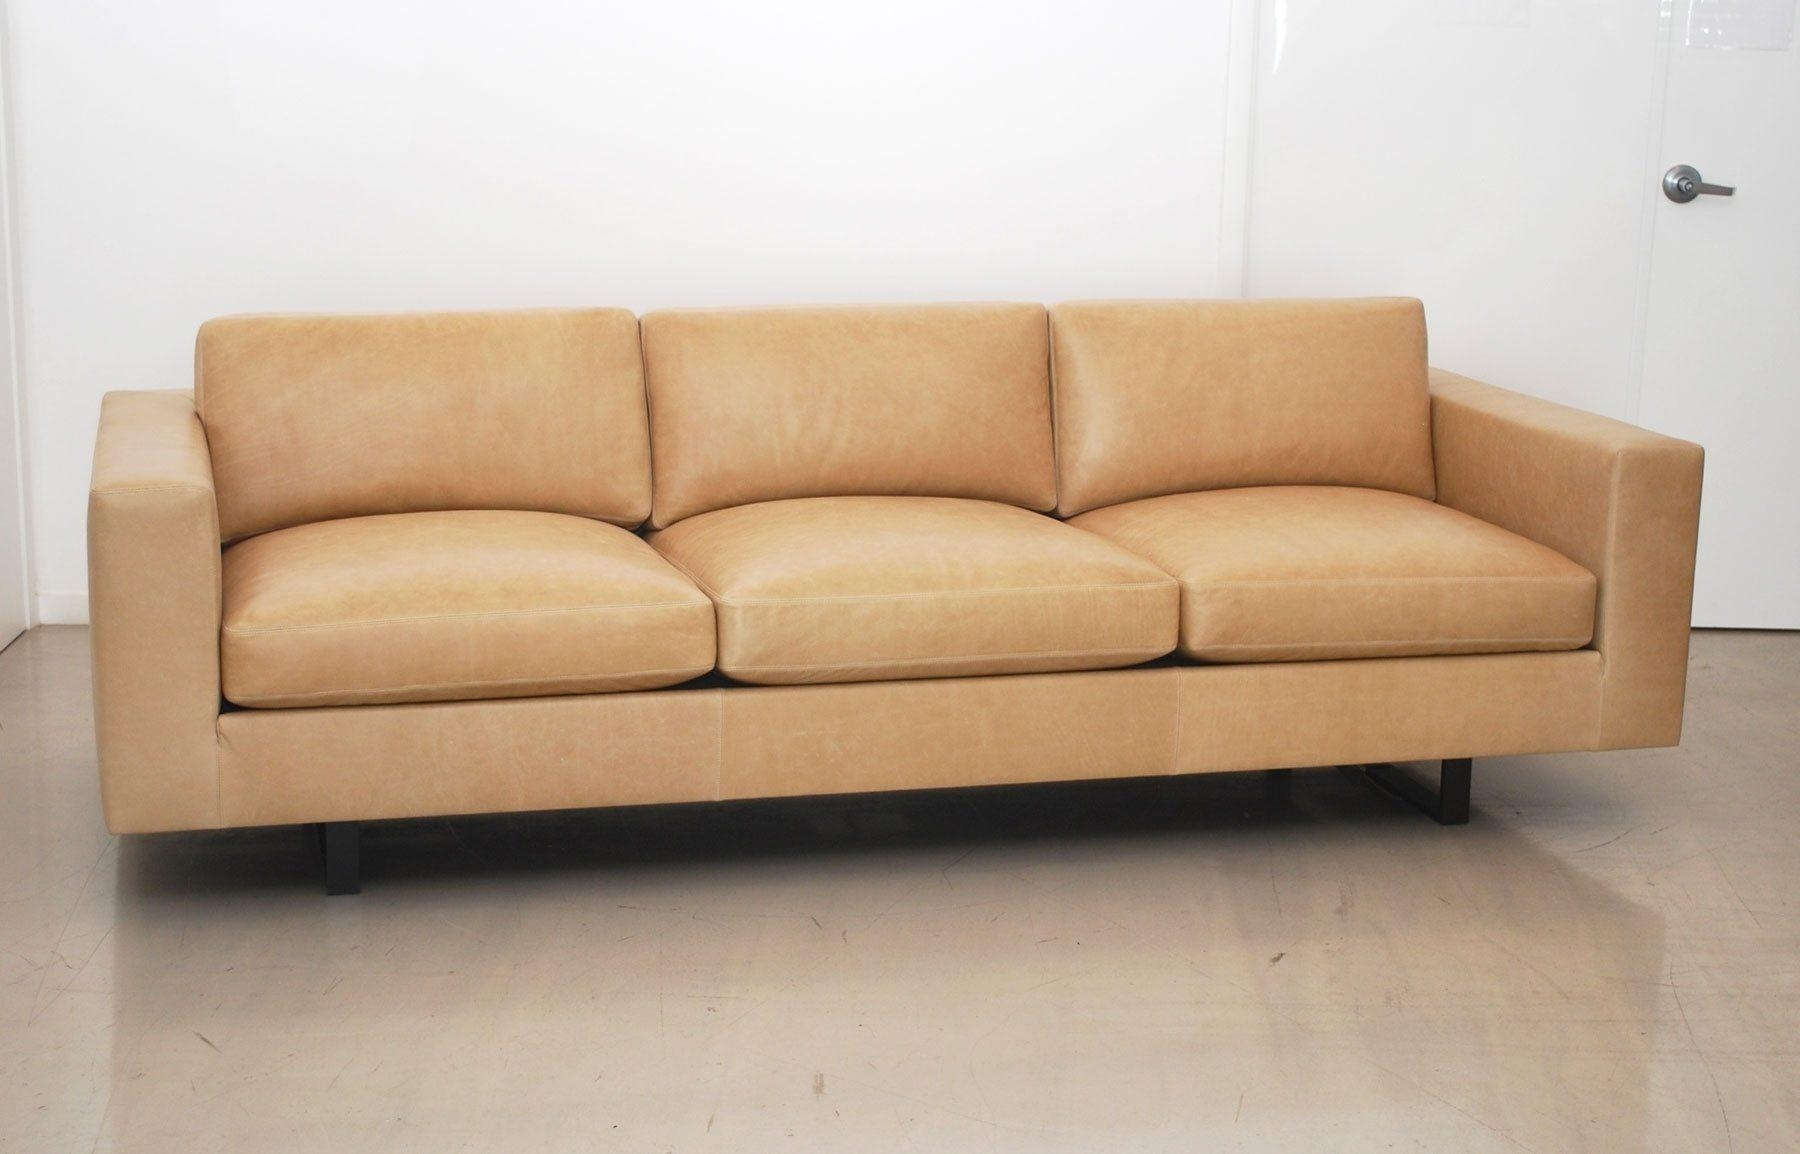 los angeles sectional sofa stafford wicker reclining loveseat bed sleeper sofas simone